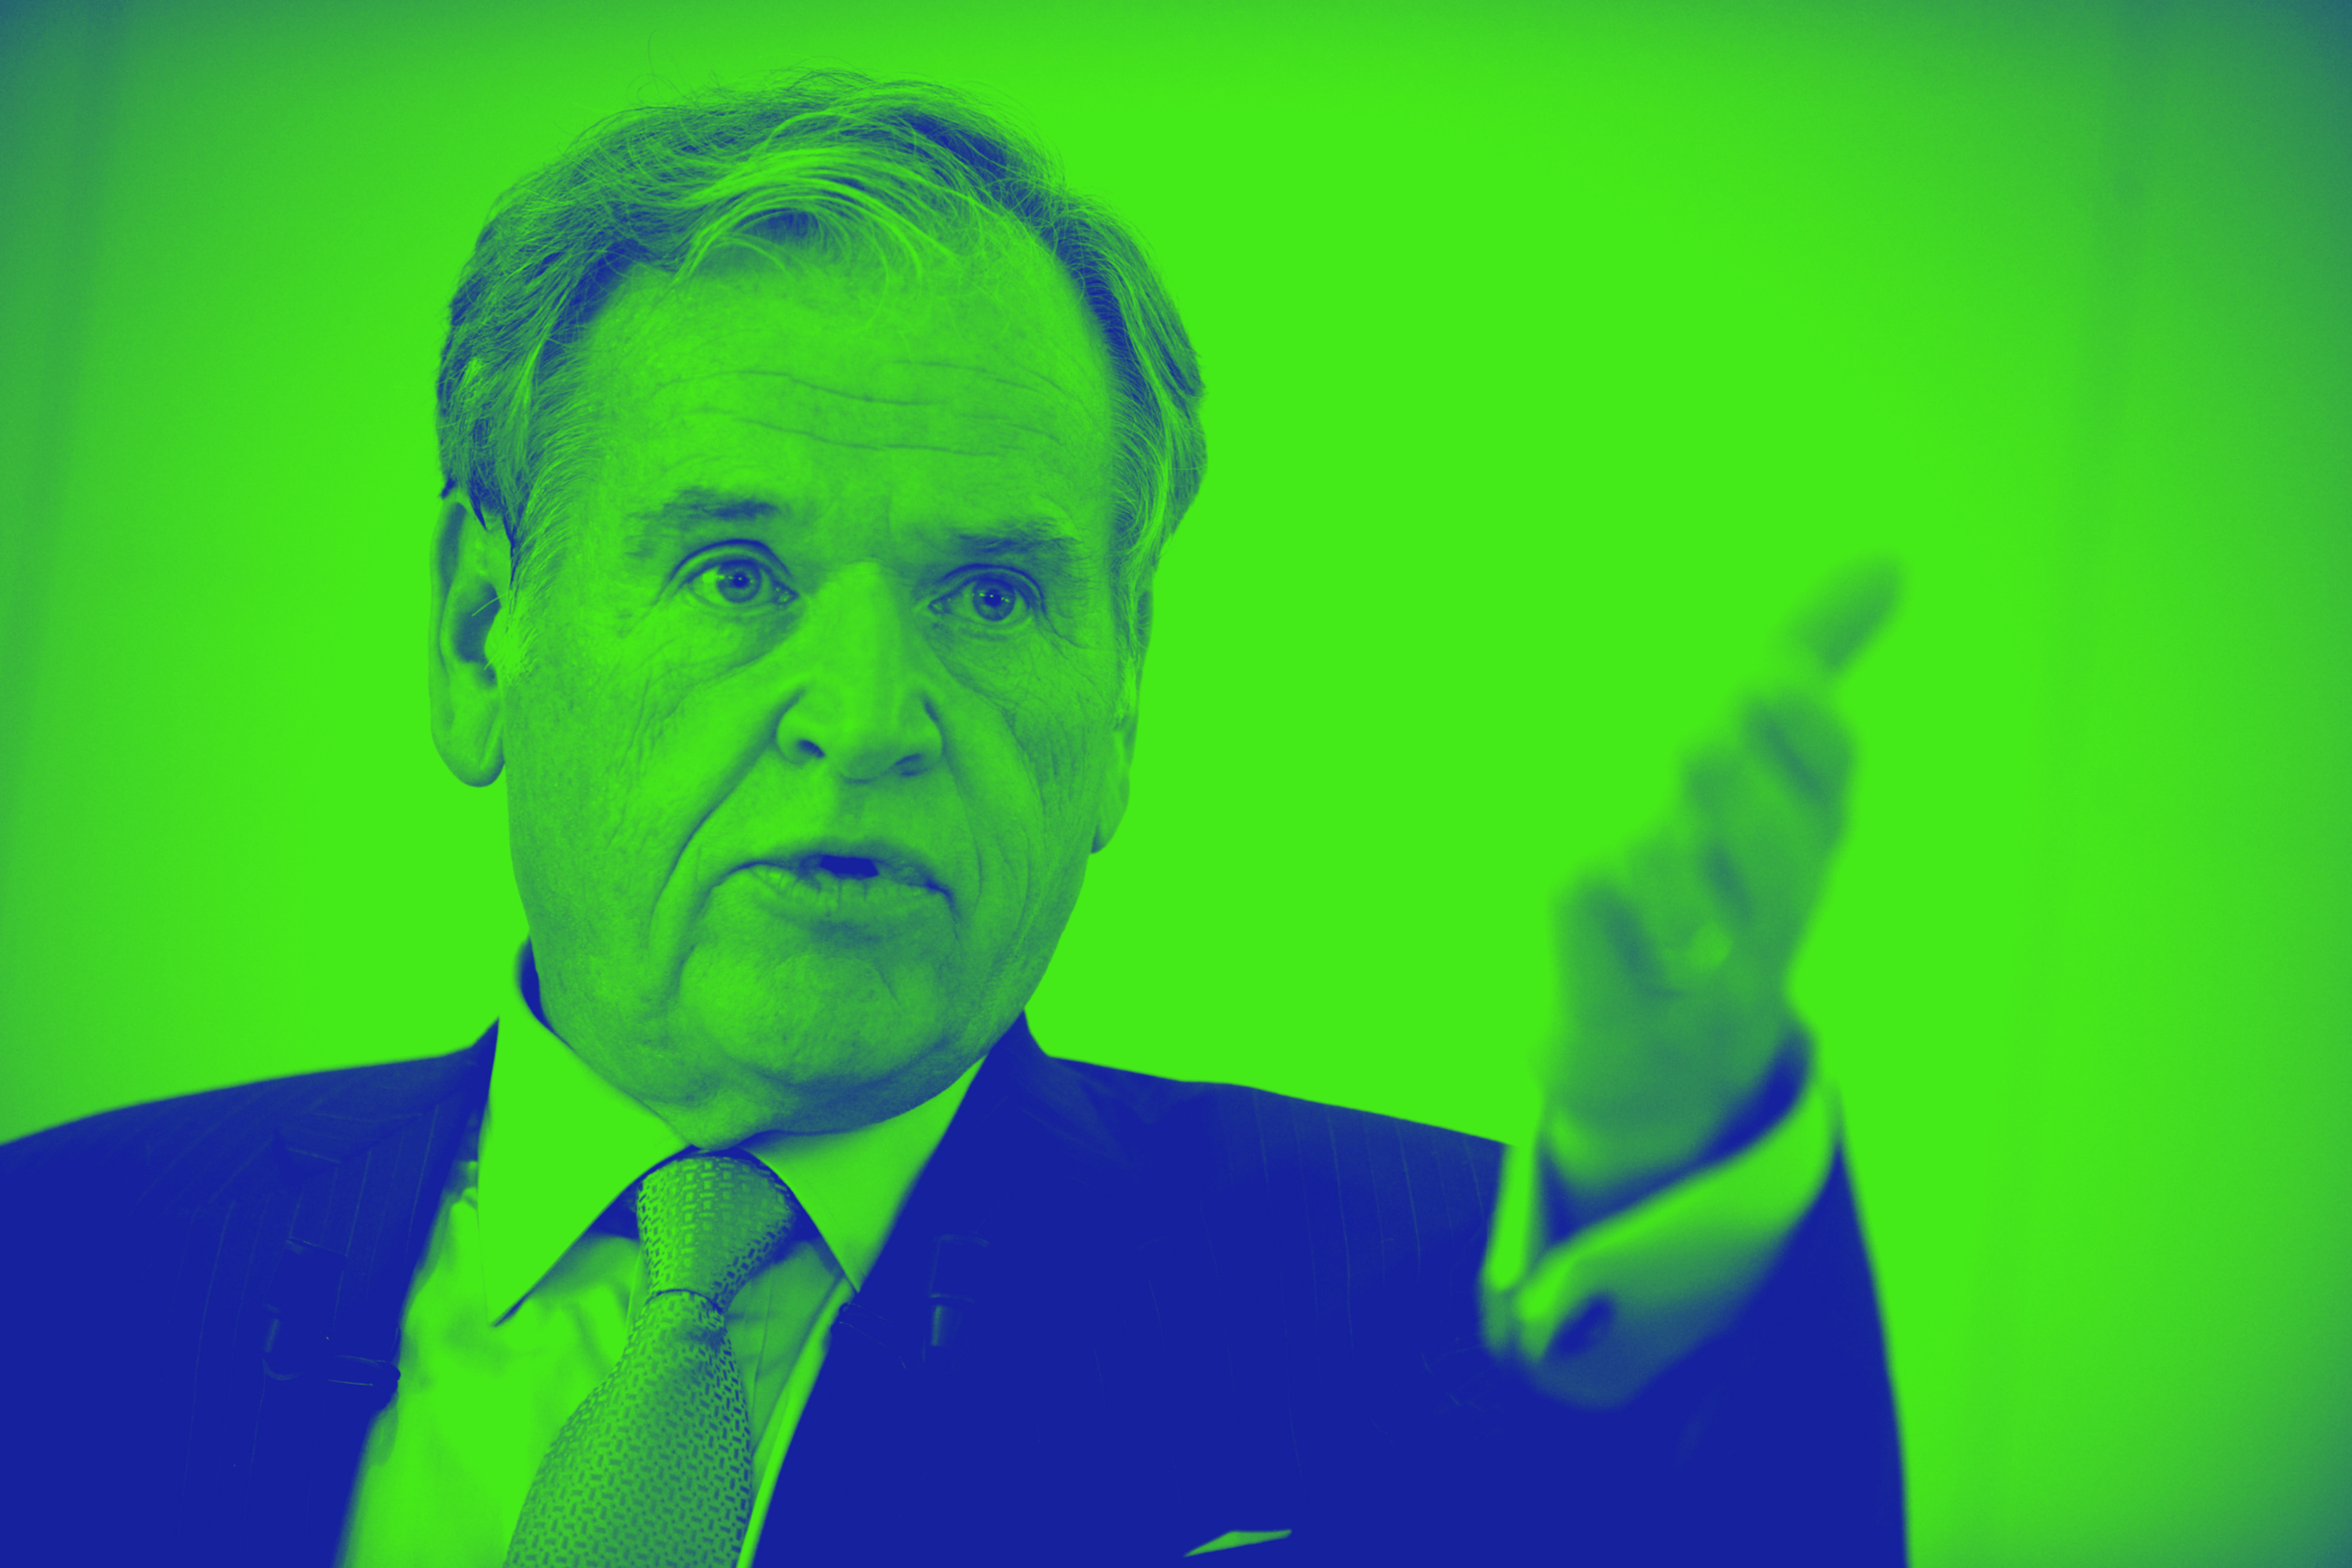 Omnicom Group CEO John Wren warns of further 'cost savings' as clients cut spend due to pandemic